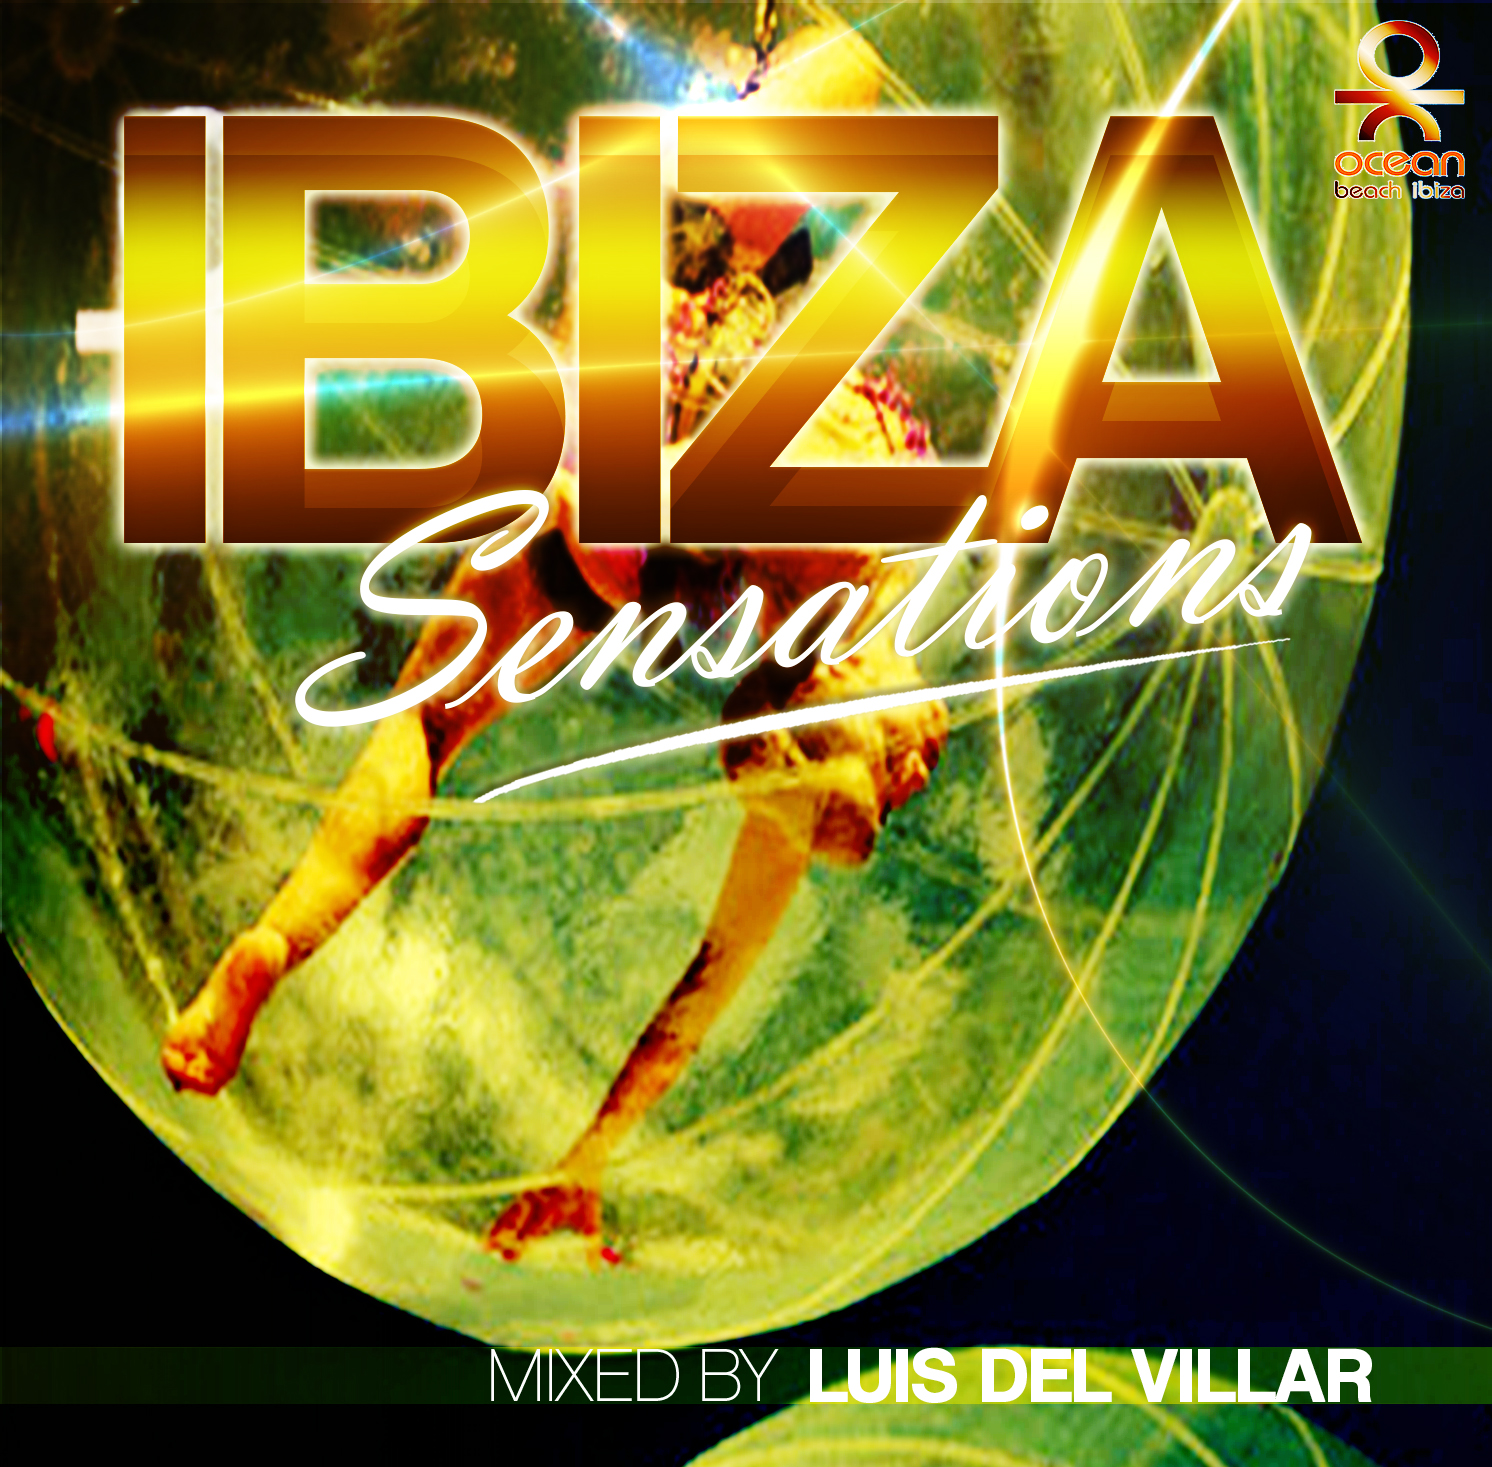 Artwork for Ibiza Sensations 151 December in The Netherlands